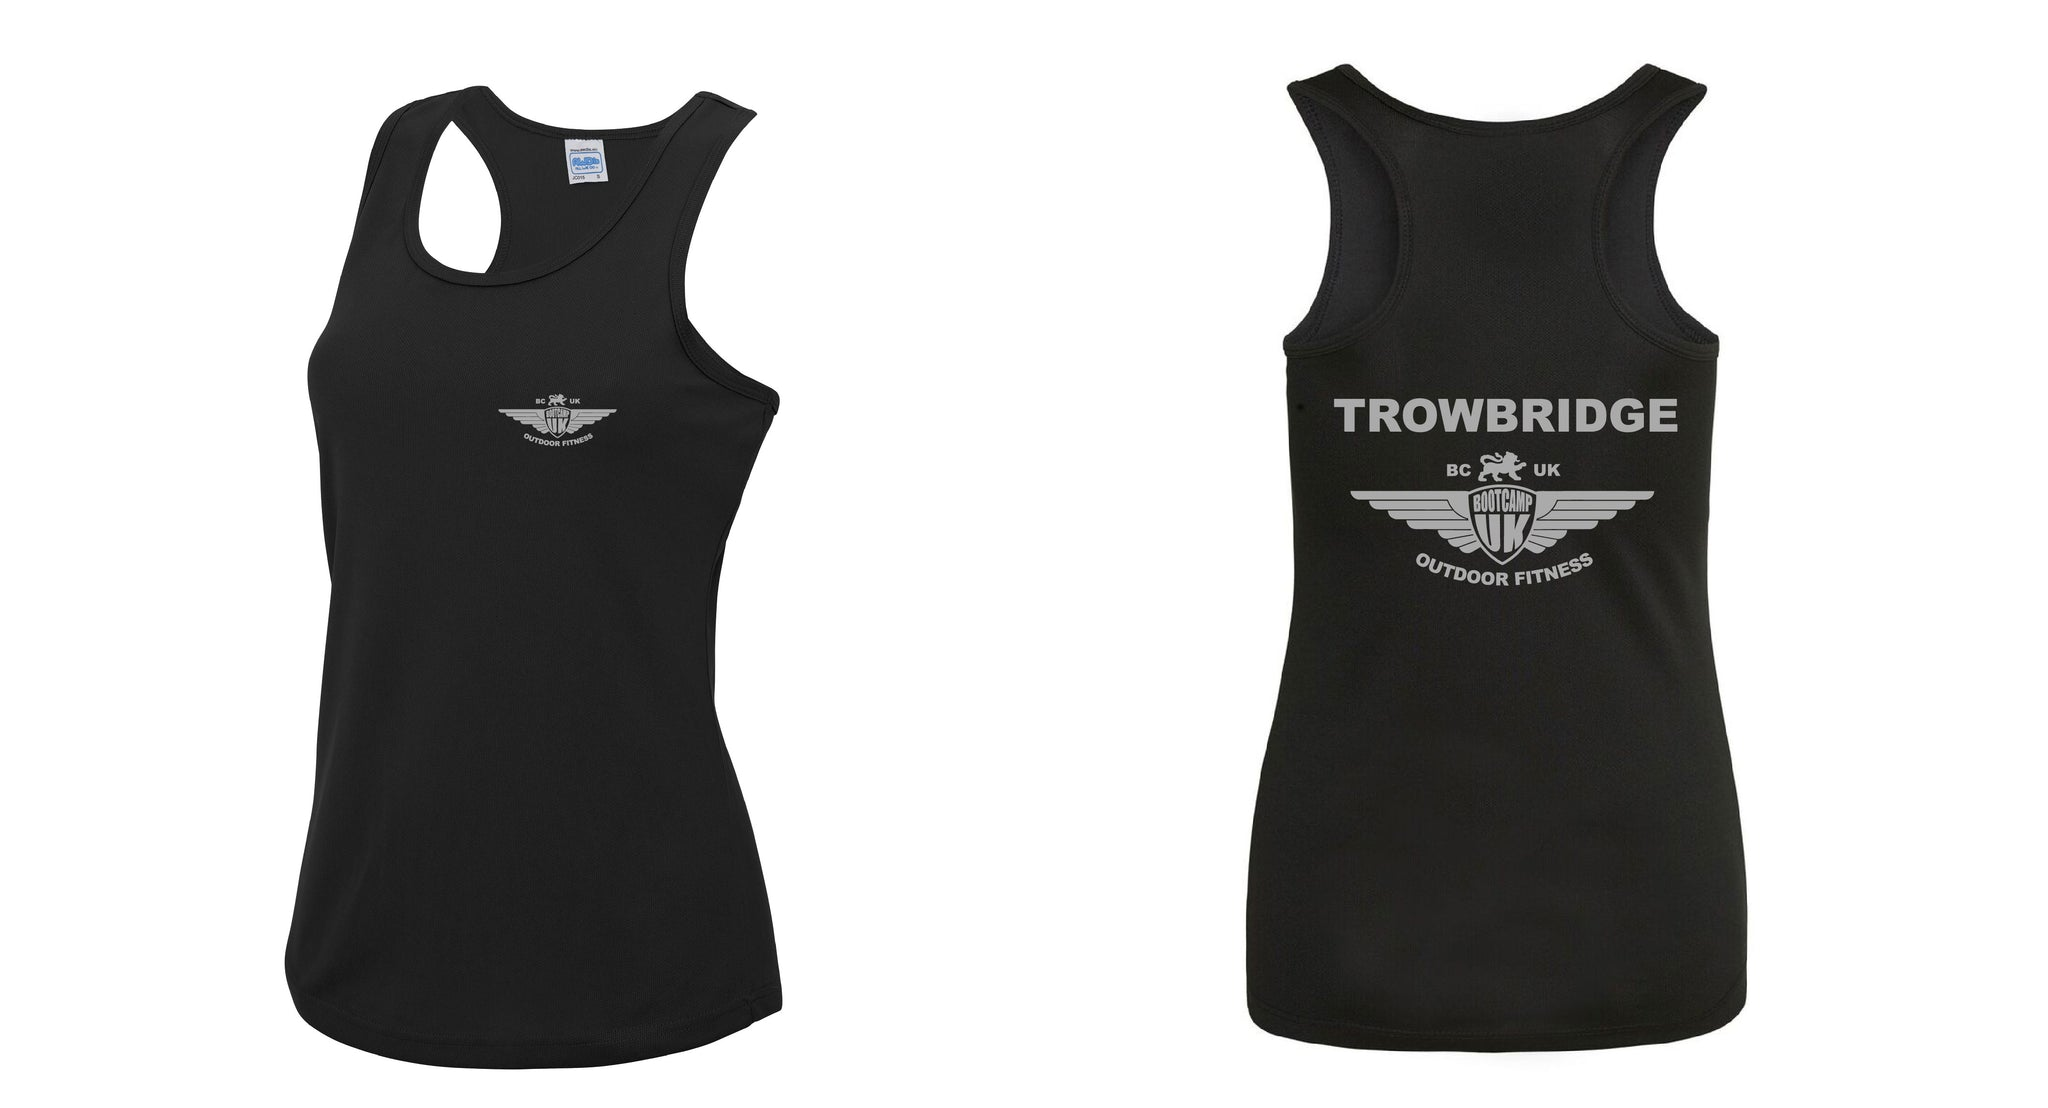 Trowbridge Ladies Vest